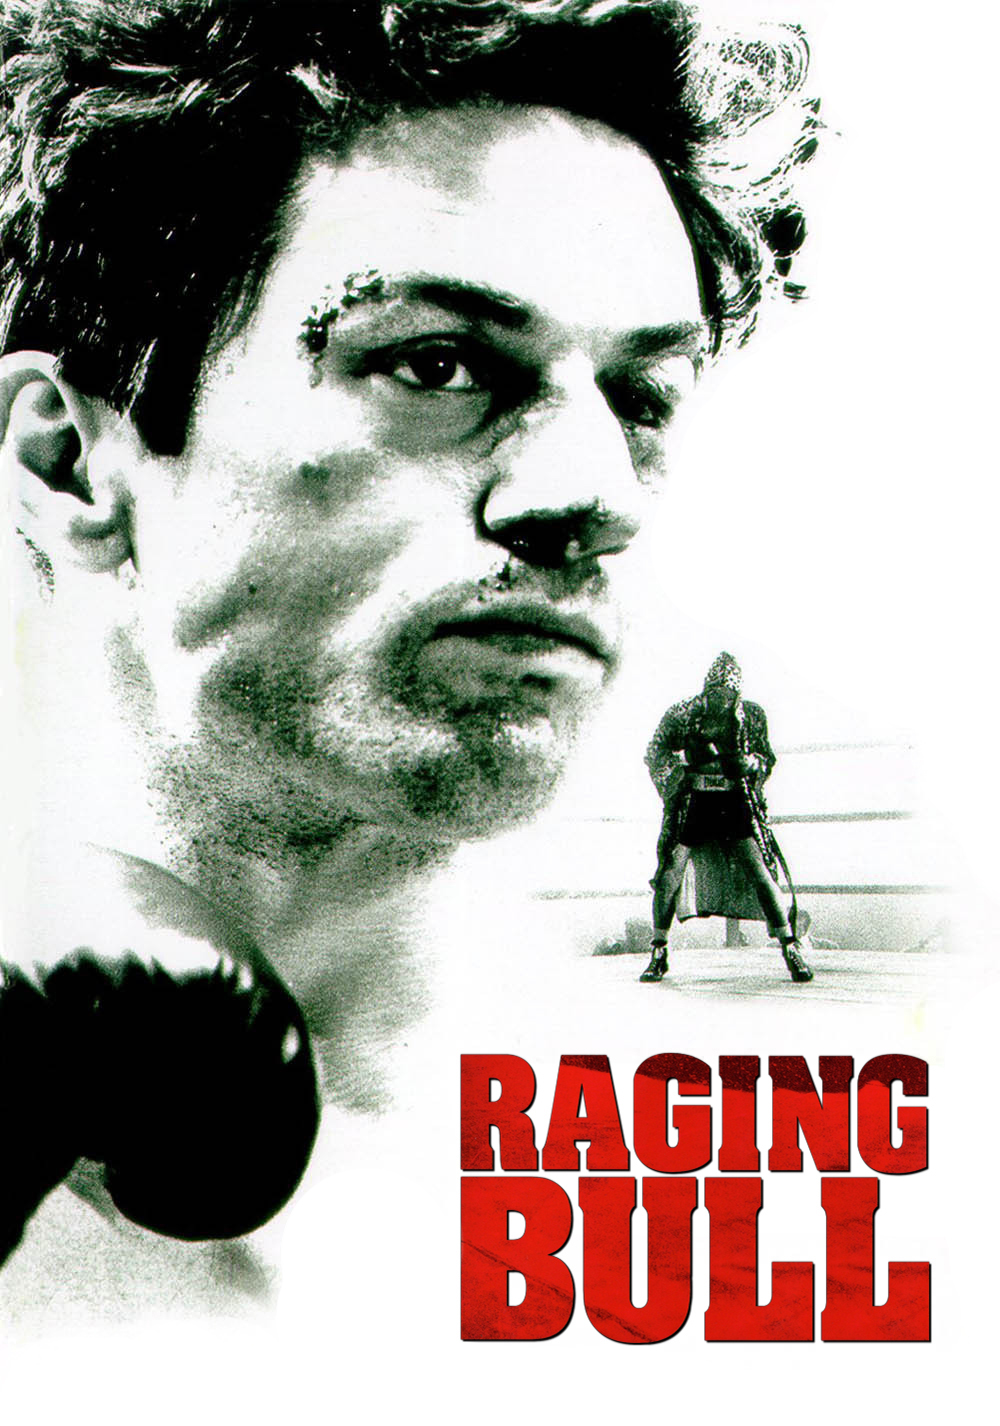 Ragging bull movie